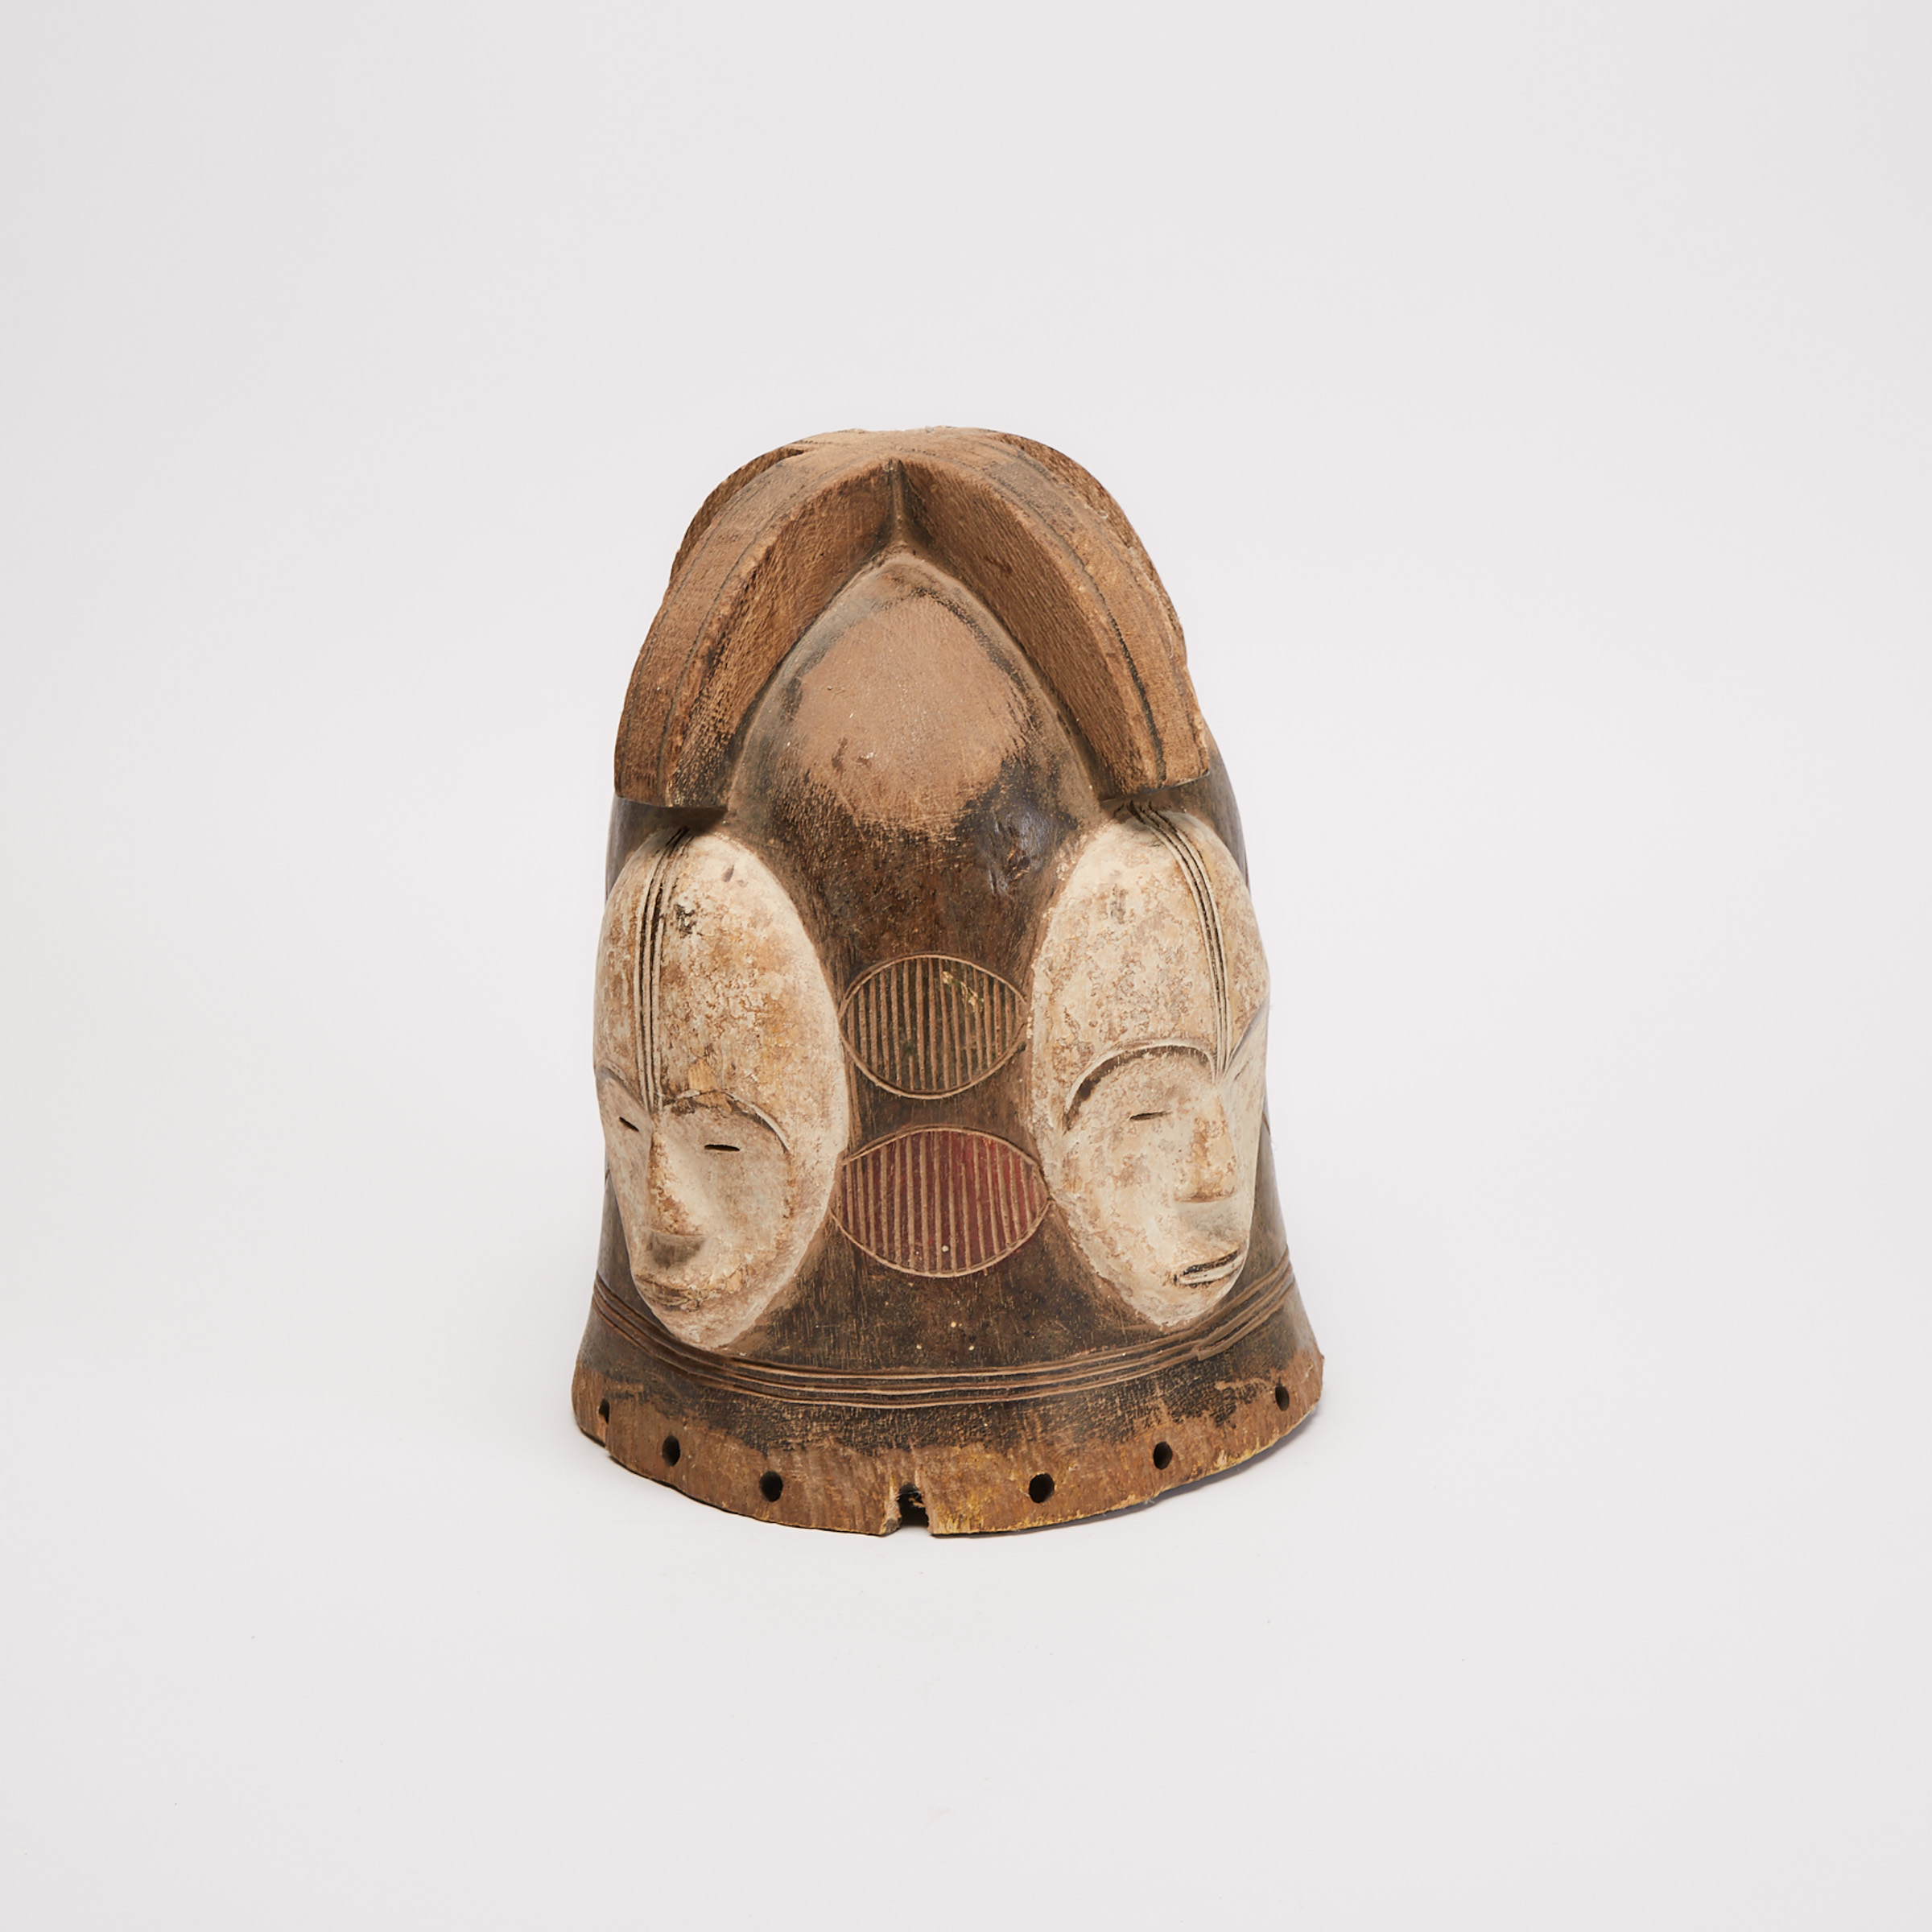 Fang Ngontang Helmet Mask, Central Africa